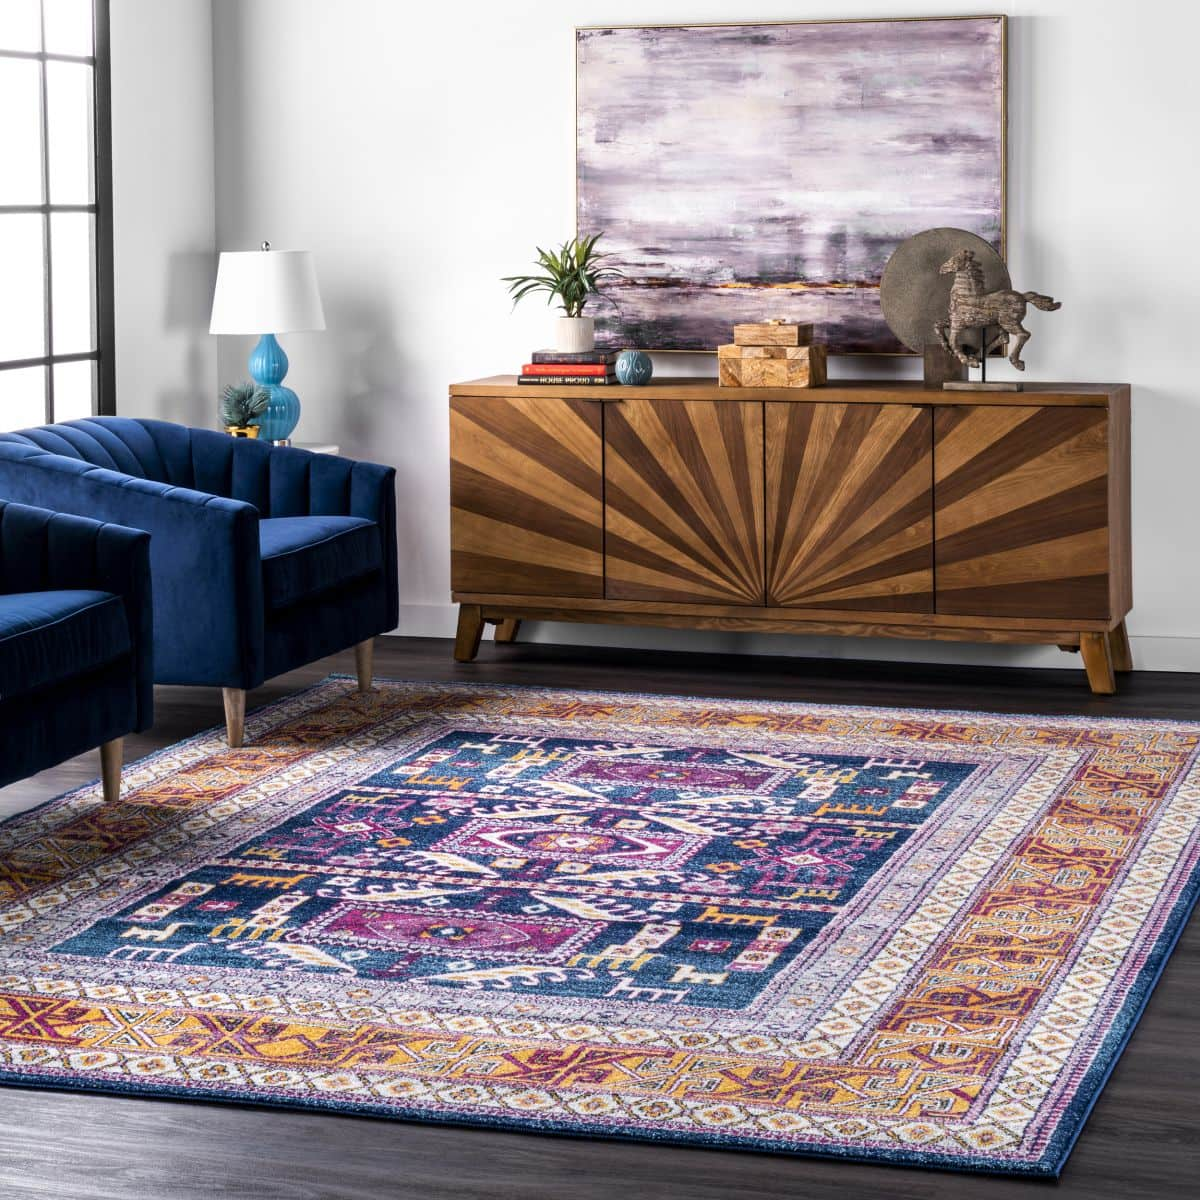 Embrace Color With a Bright Tribal Area Rug